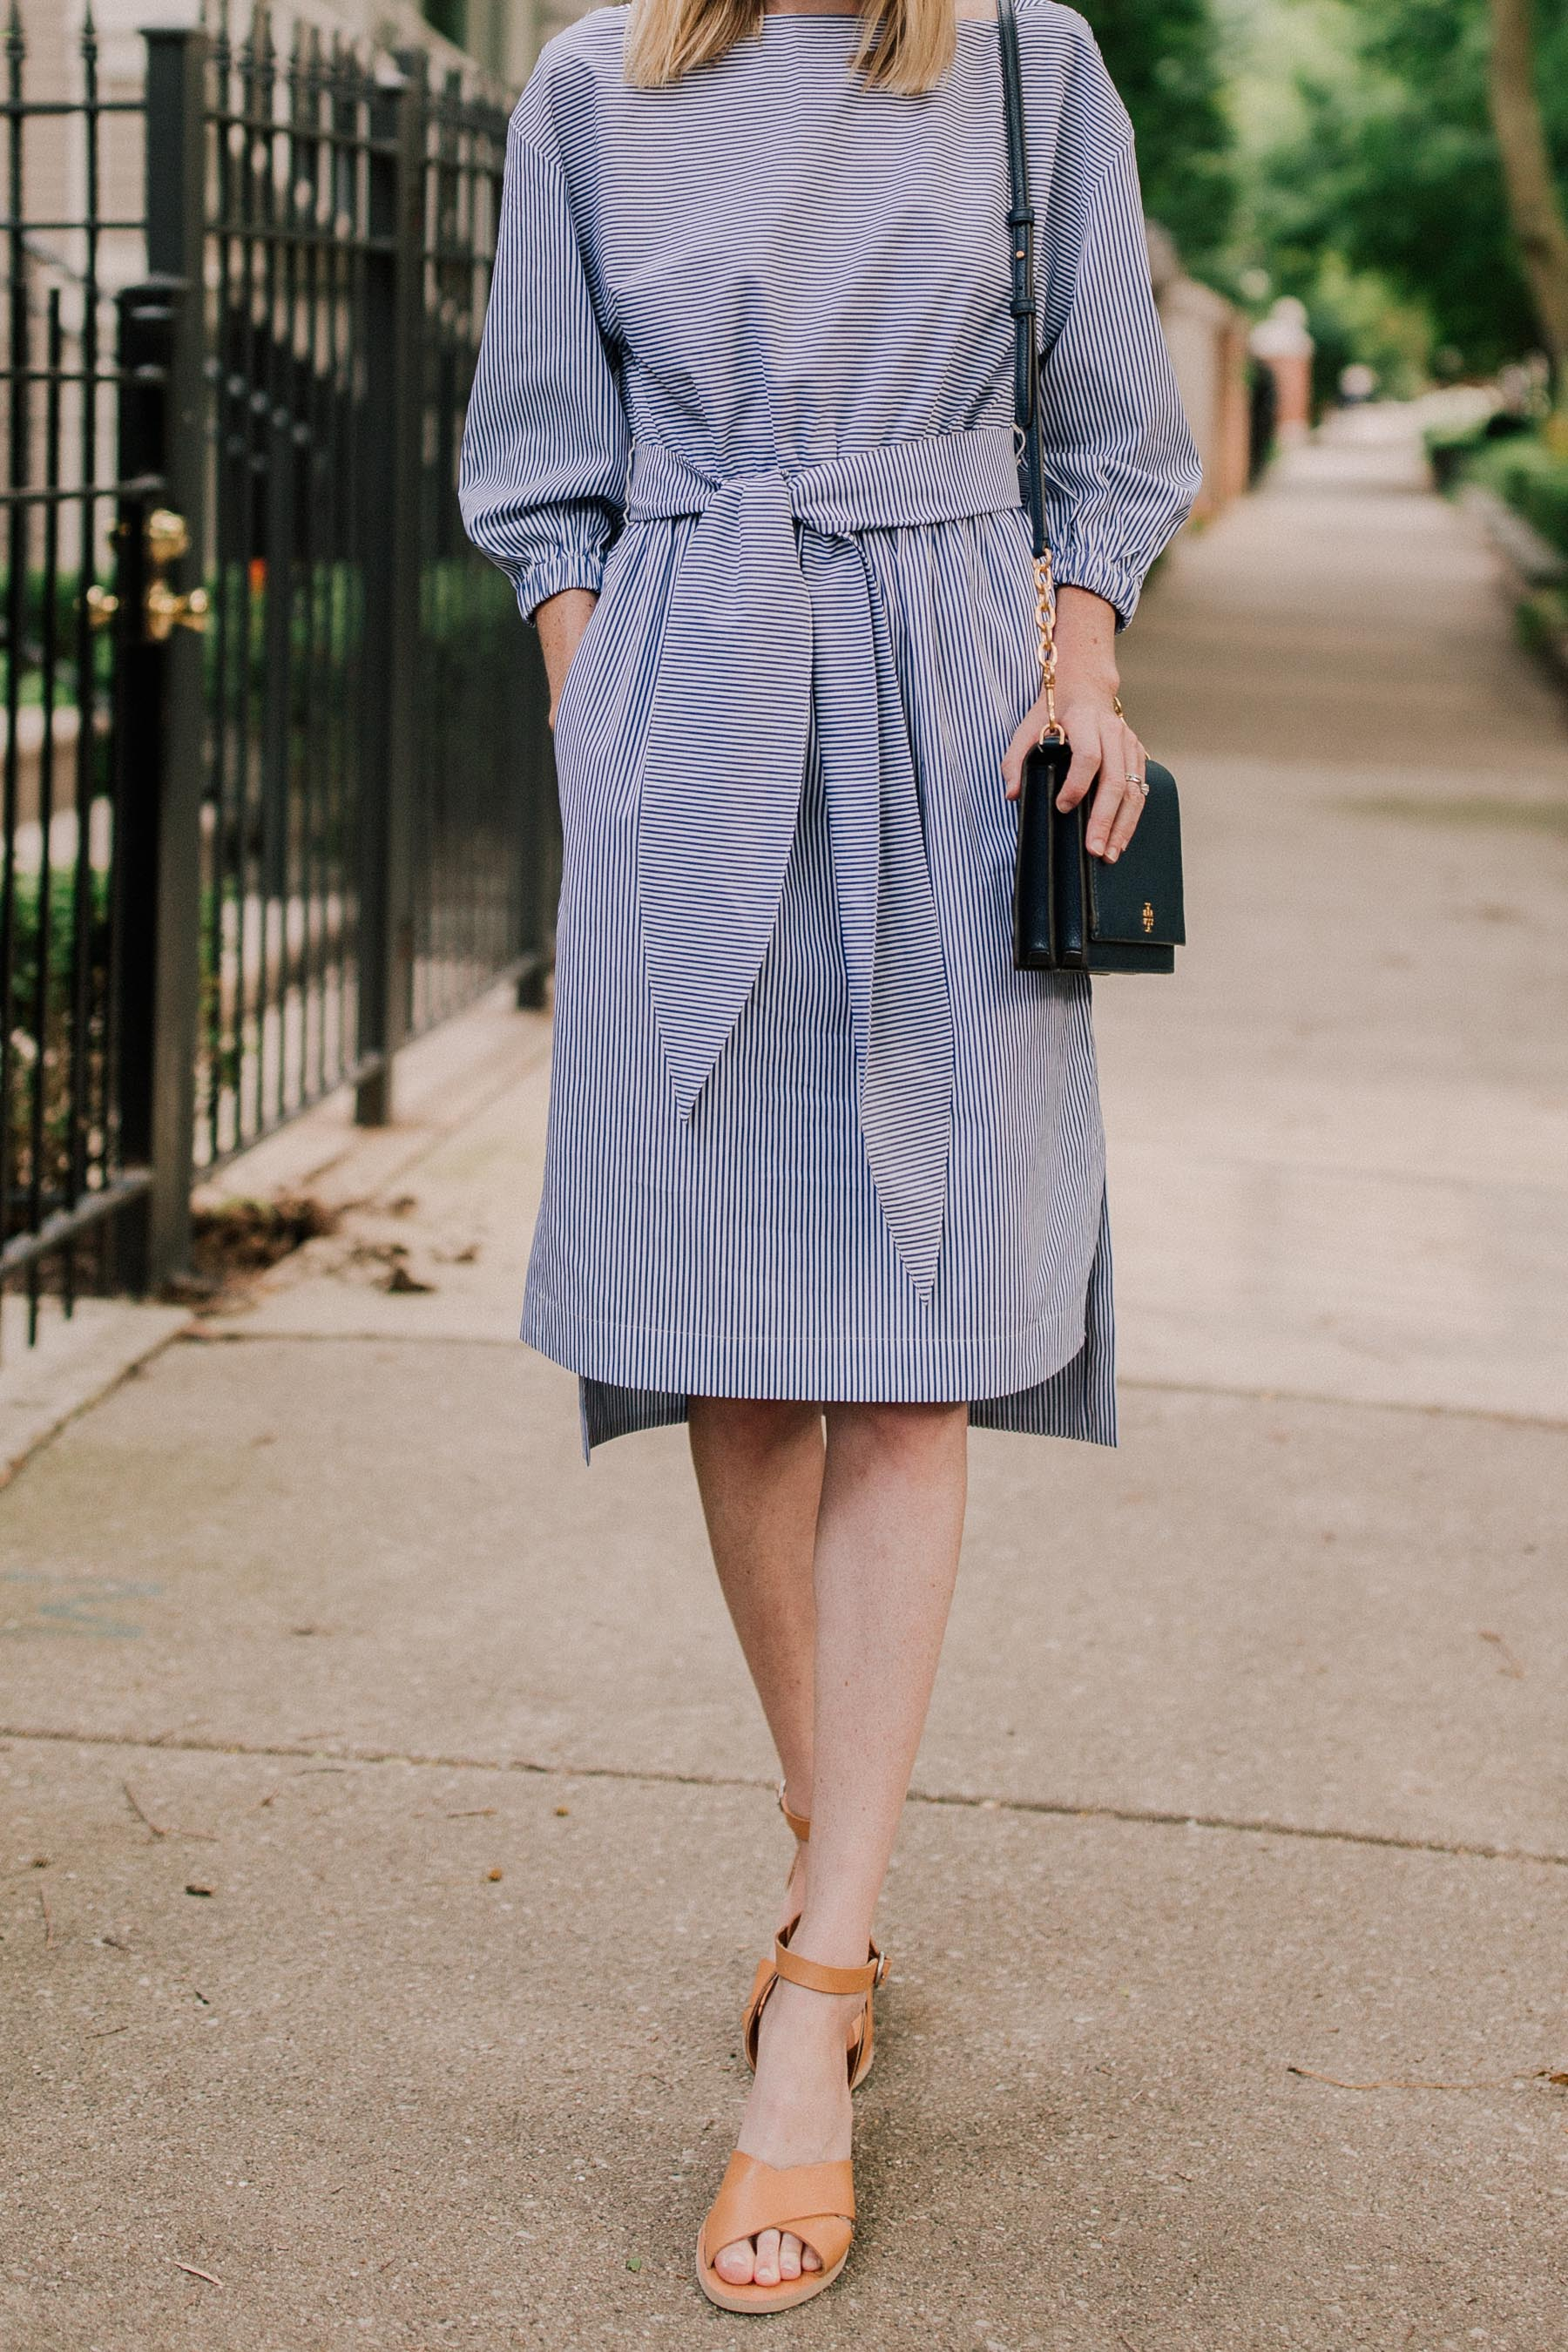 Striped Dress /Tory Burch Navy Bag / Leather Sandals